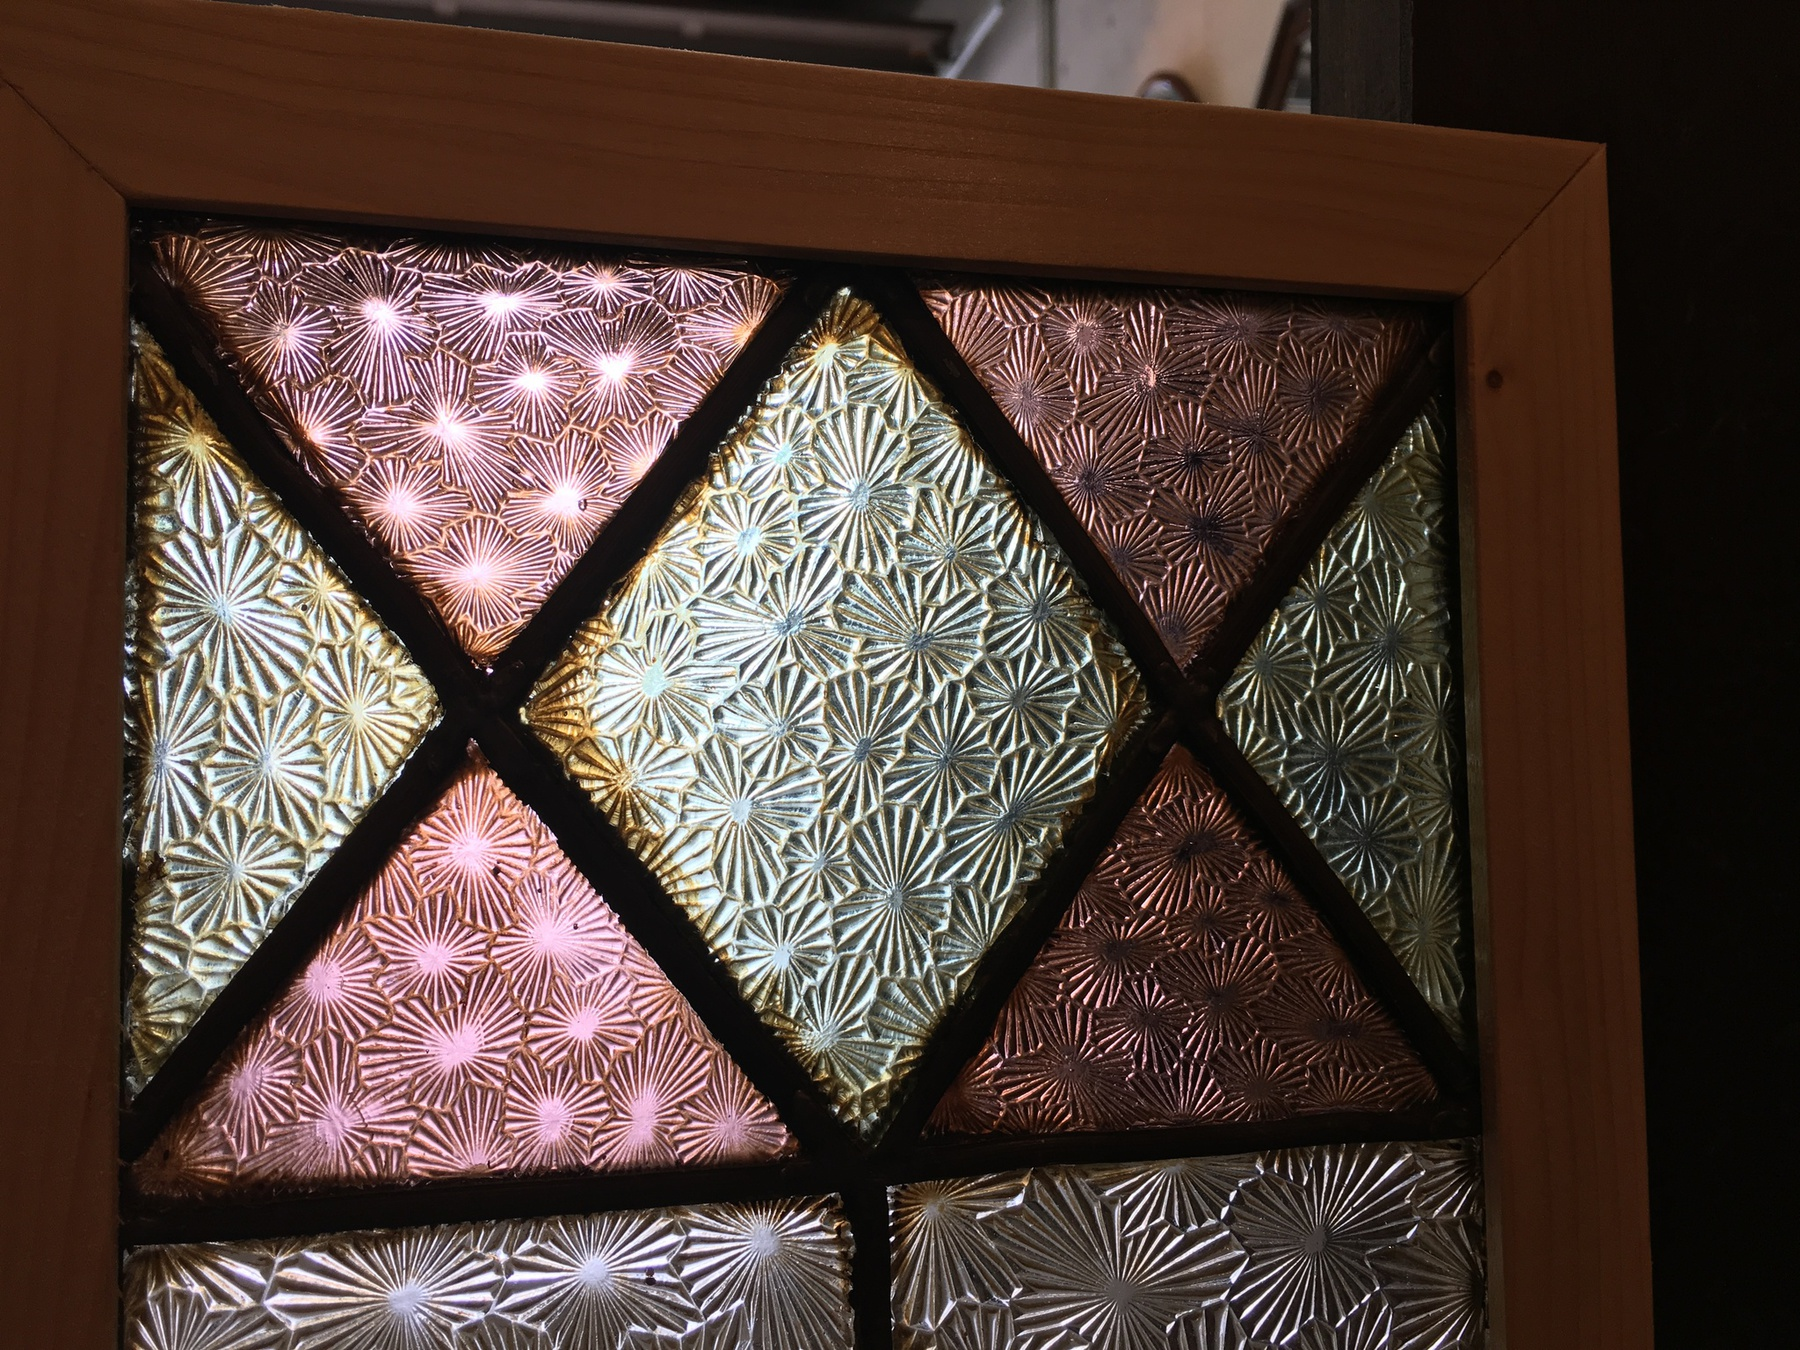 stained190830g_02.JPG